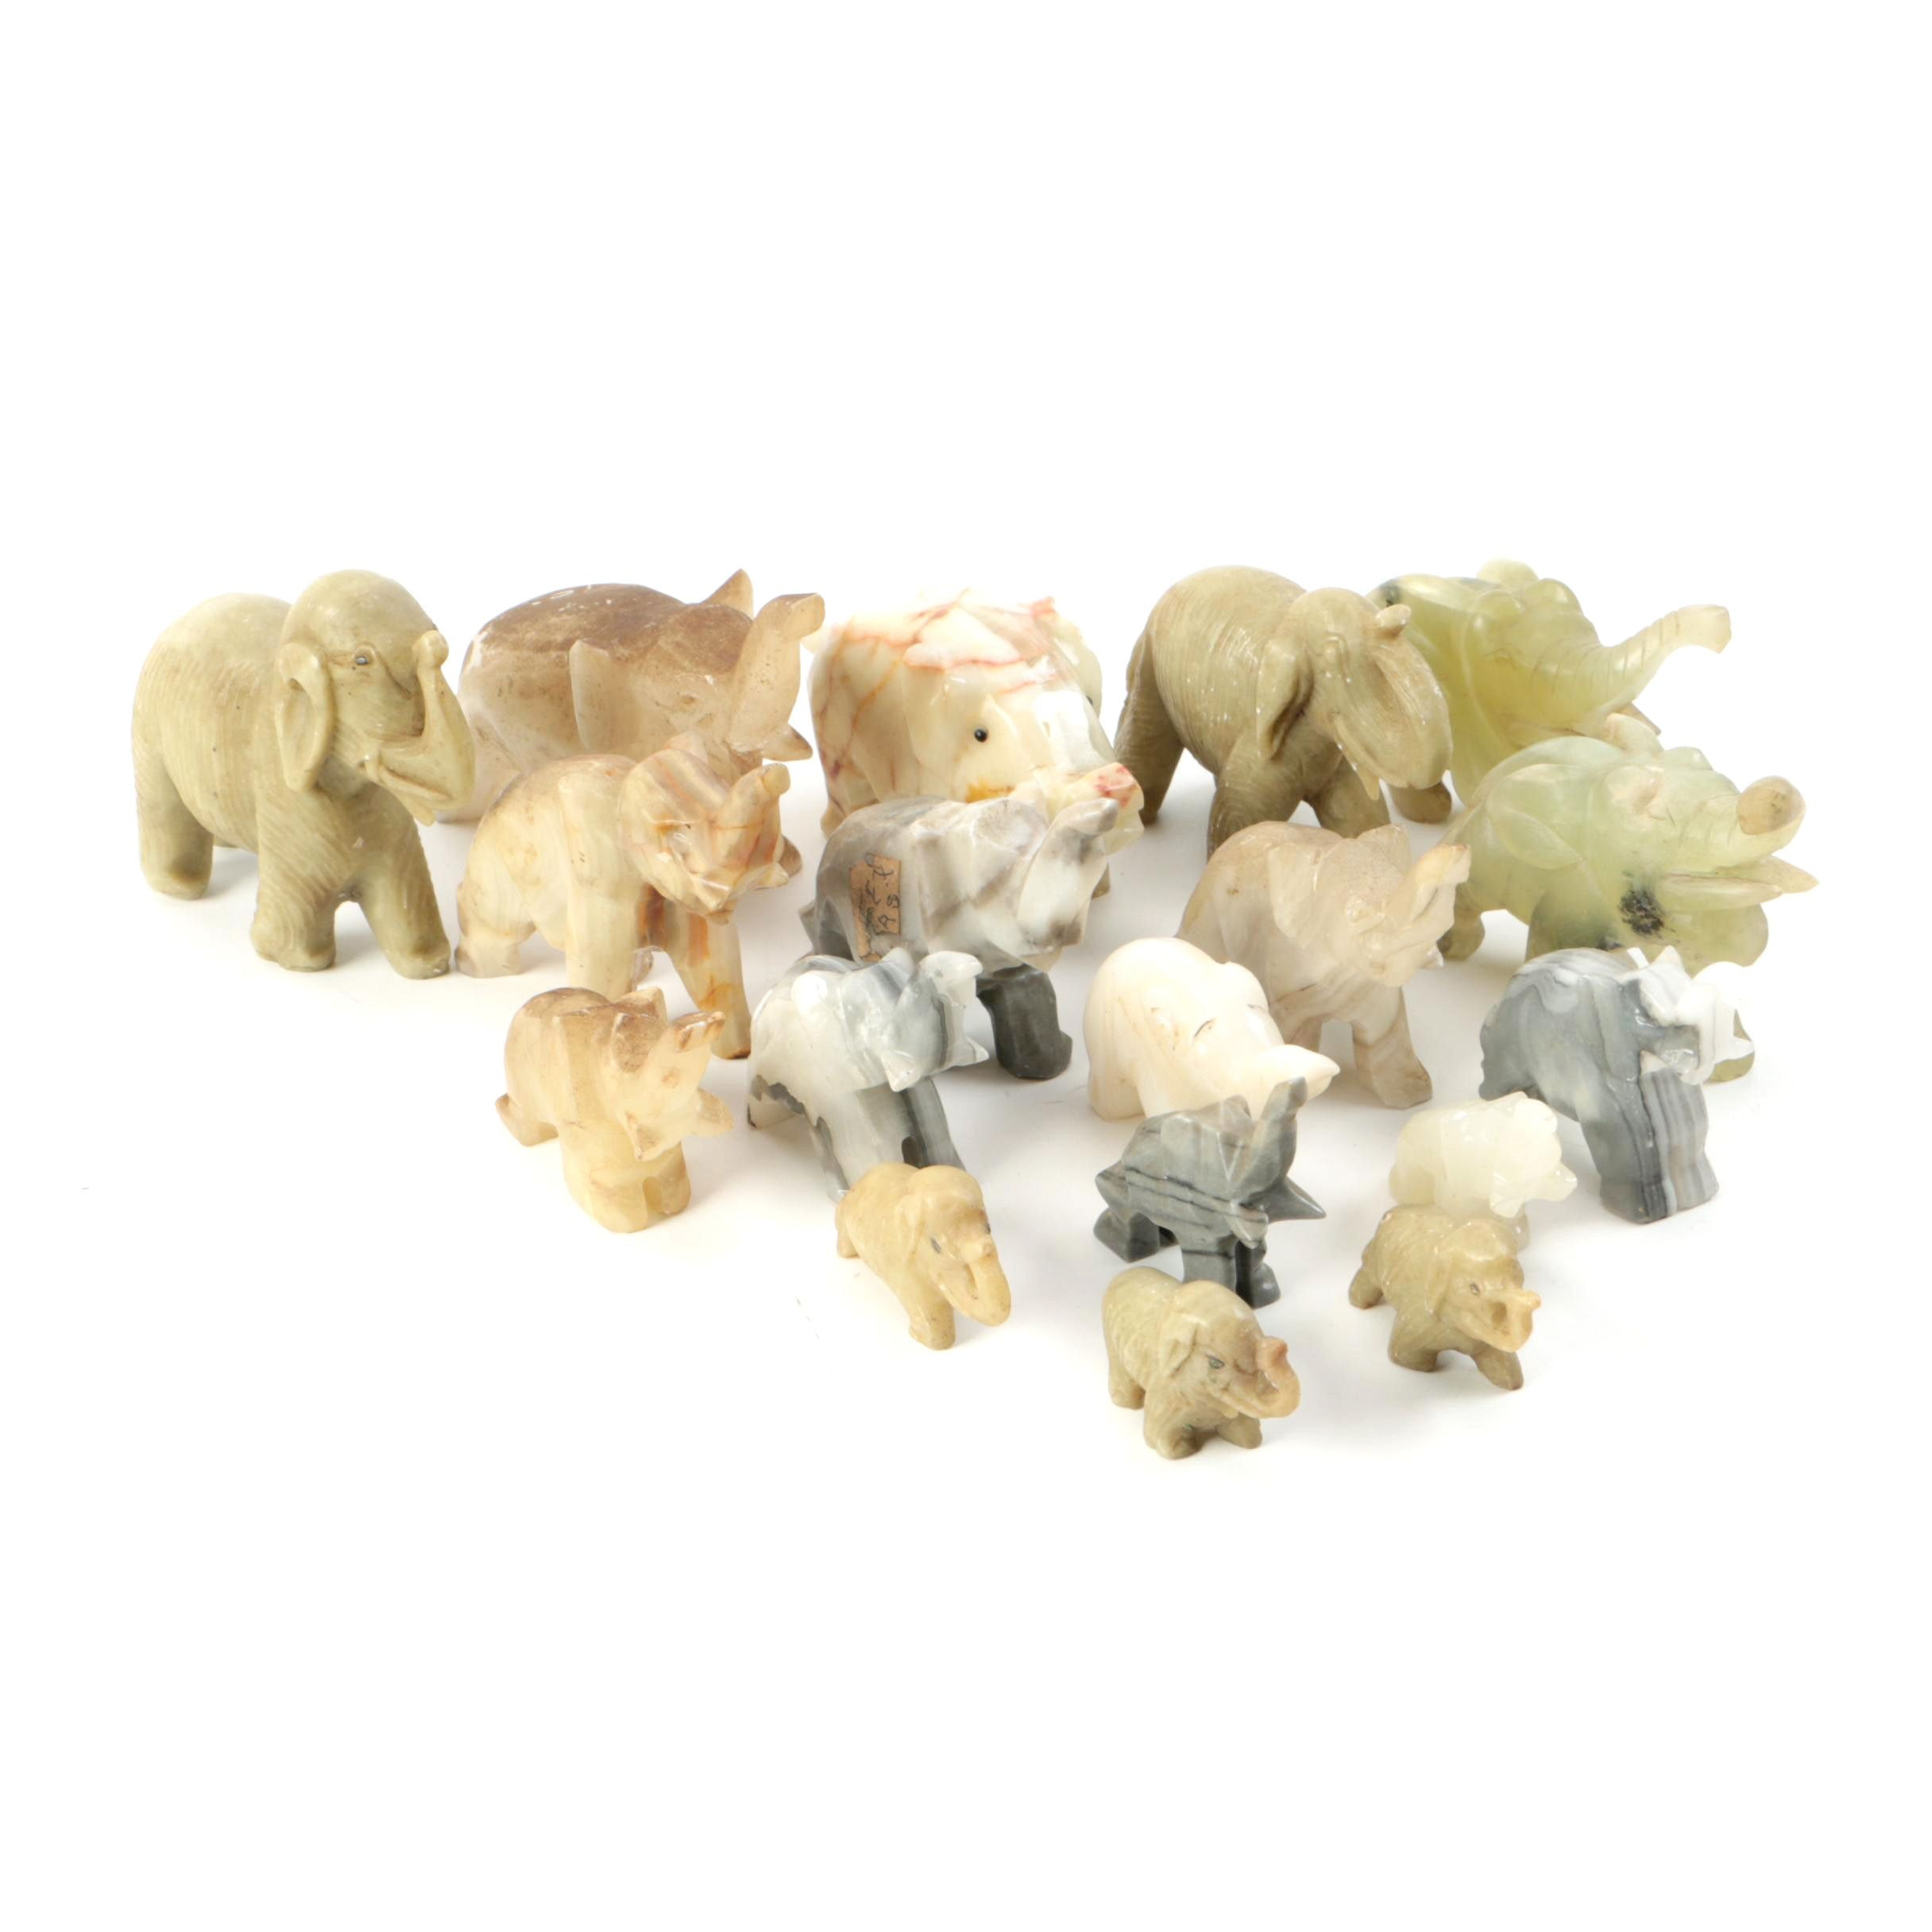 Carved Agate and Soapstone Elephant Figurines